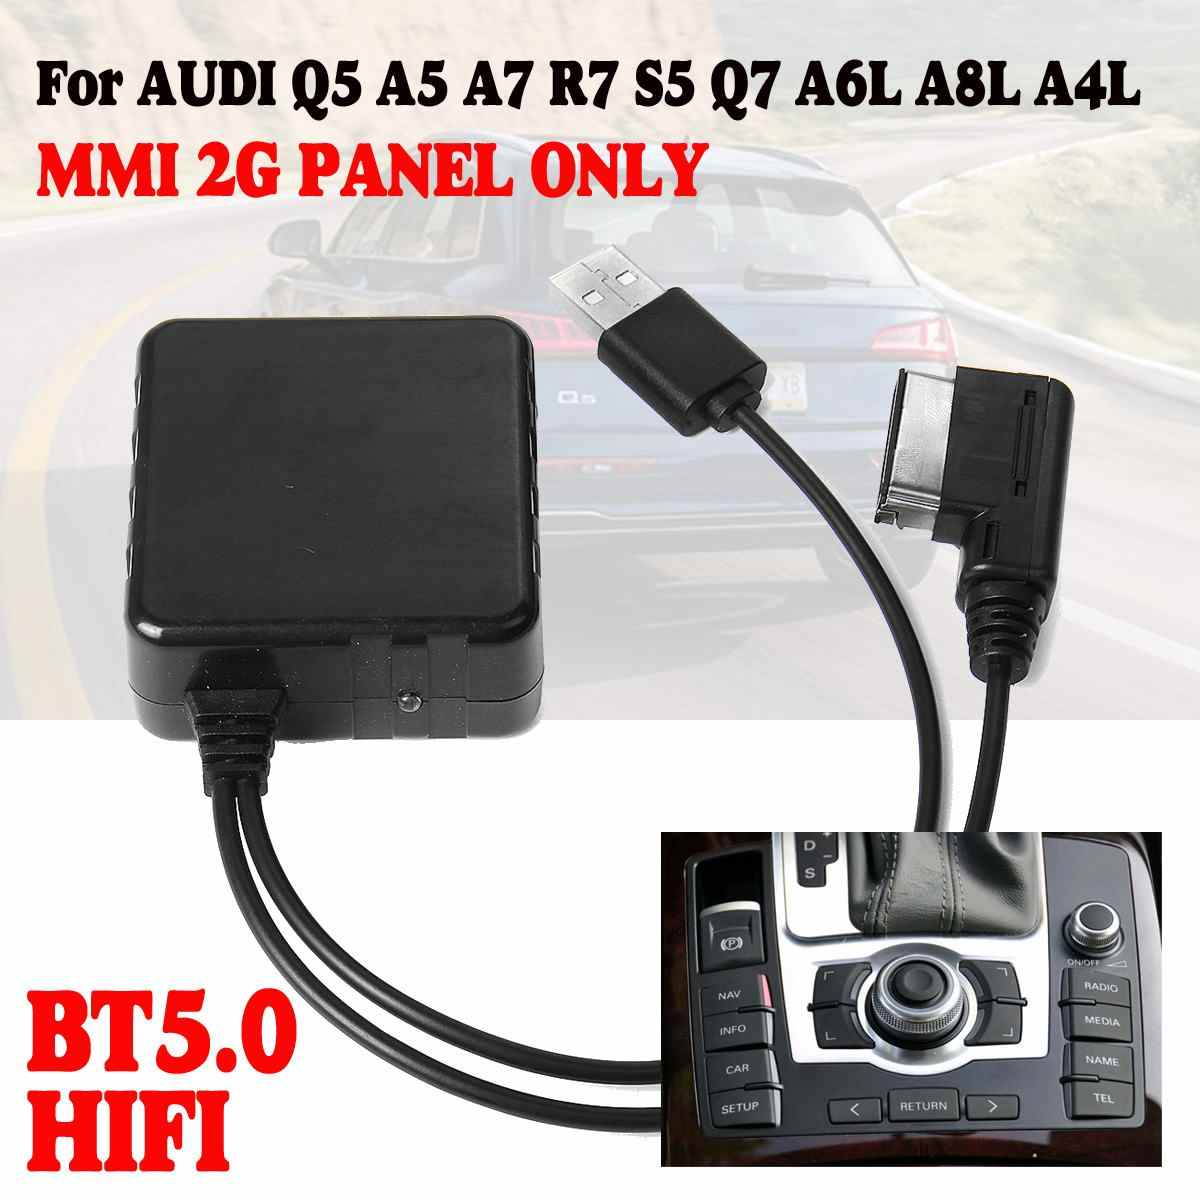 12V MMI 2G Auto bluetooth AUX Kabel Adapter Wireless Für AUDI Q5 A5 A7 R7 S5 Q7 A6L a8L A4L